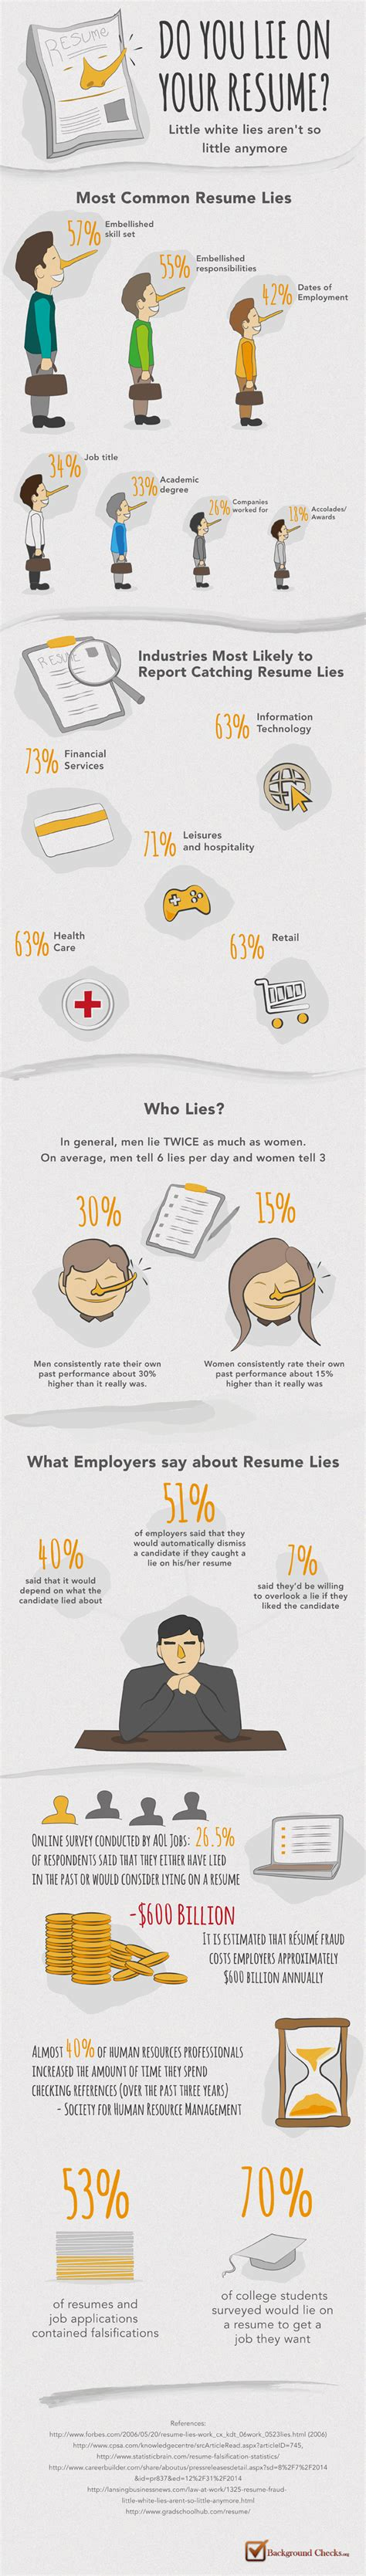 Lying About Associate Degree On Resume by Why Resume White Lies Are A Big Mistake Infographic The Savvy Intern By Youternthe